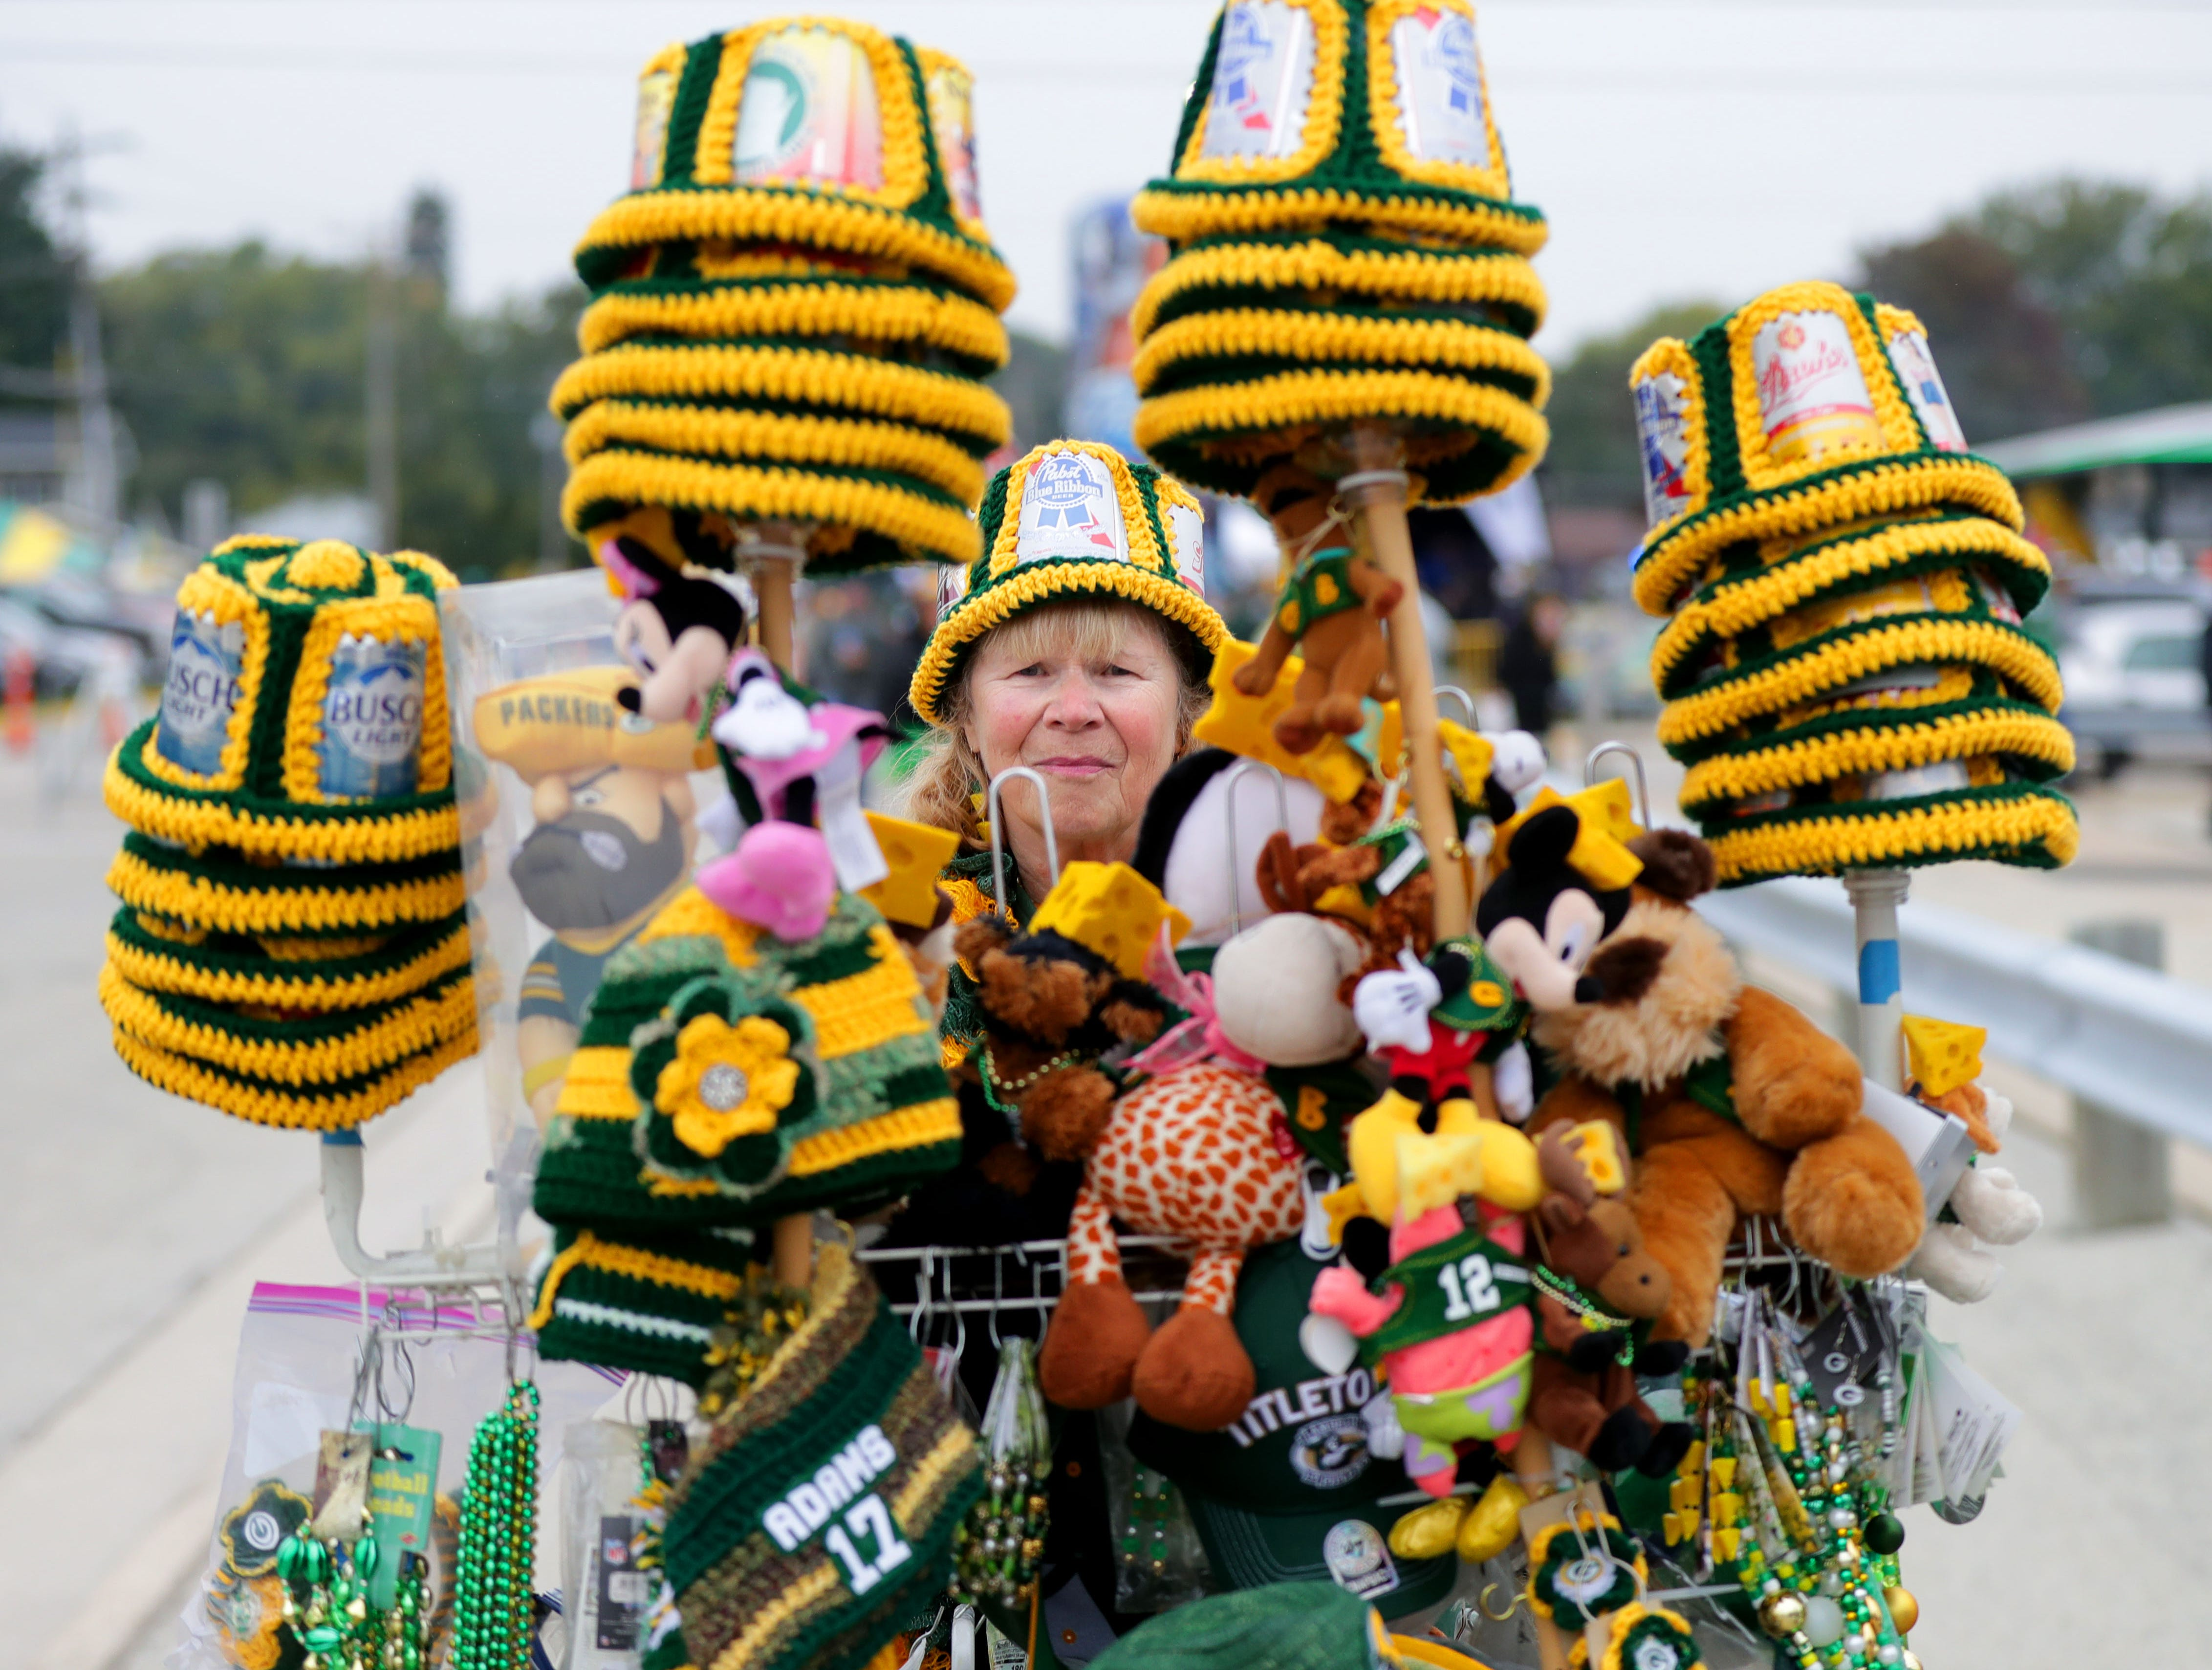 Sharon Meyer sells crochet Packers hats before the Green Bay Packers game against the Buffalo Bills at Lambeau Field in Green Bay, Wis. on Sunday, September 30, 2018.